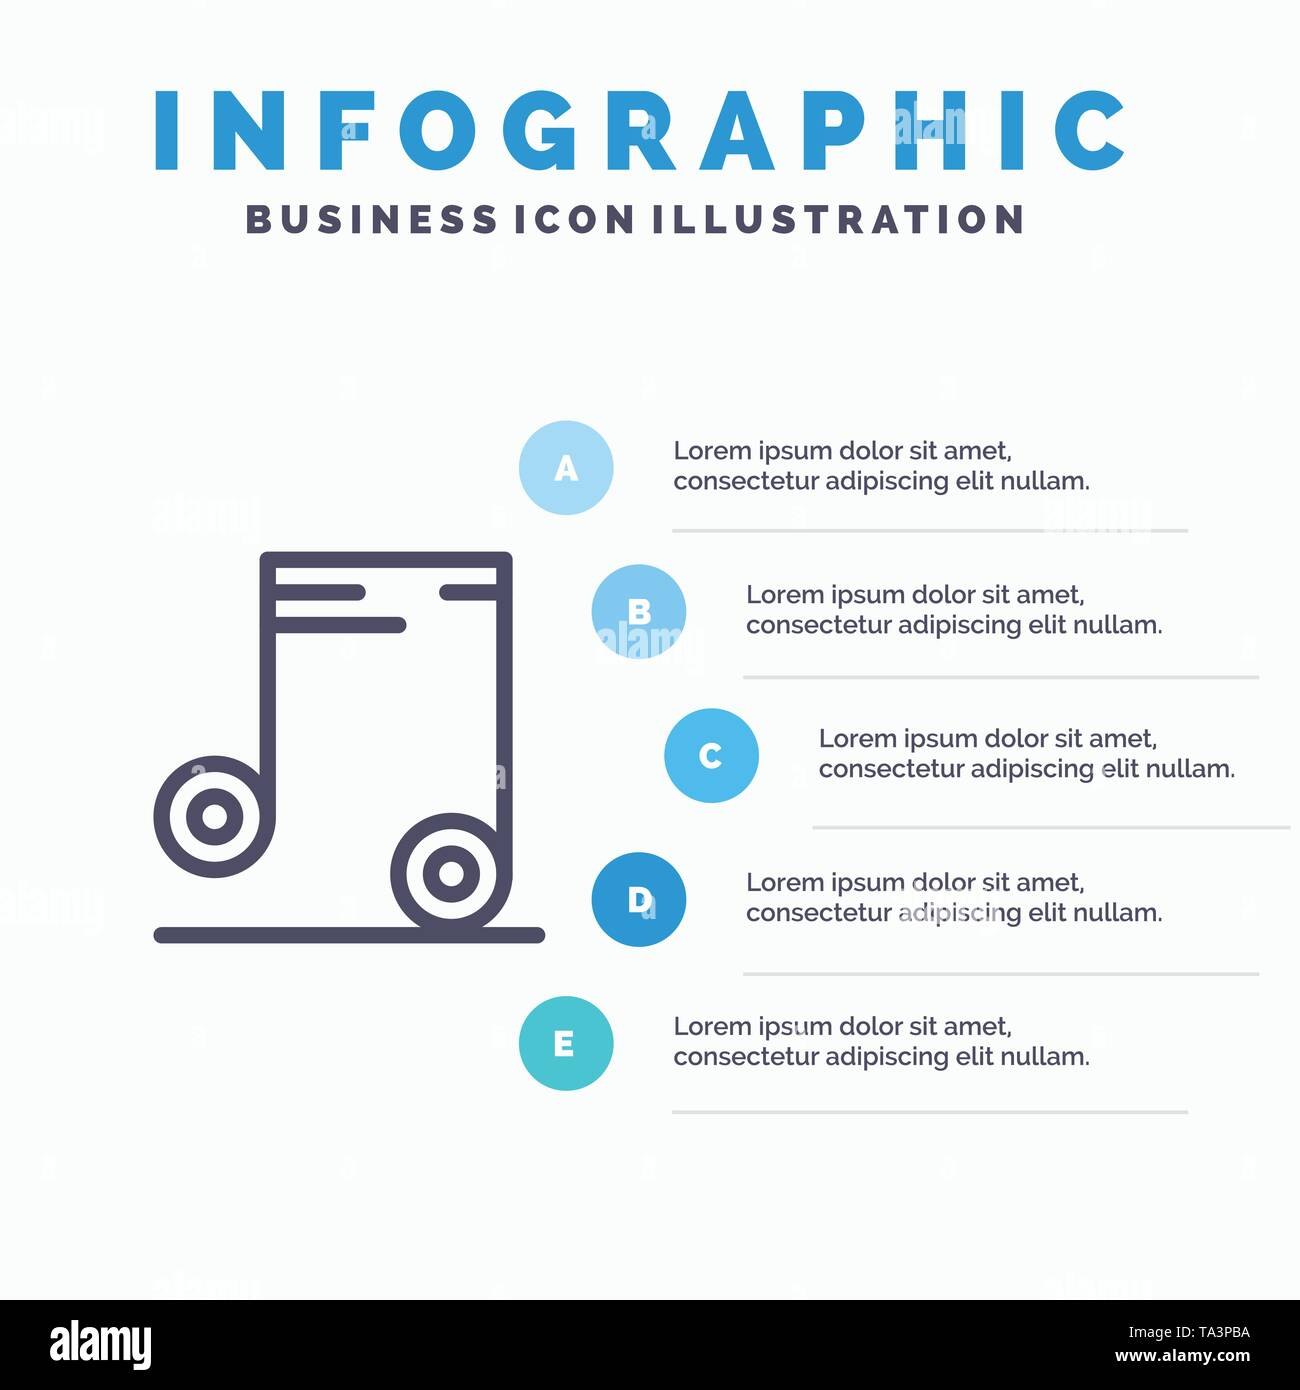 Music, Audio, School Line icon with 5 steps presentation infographics Background - Stock Image